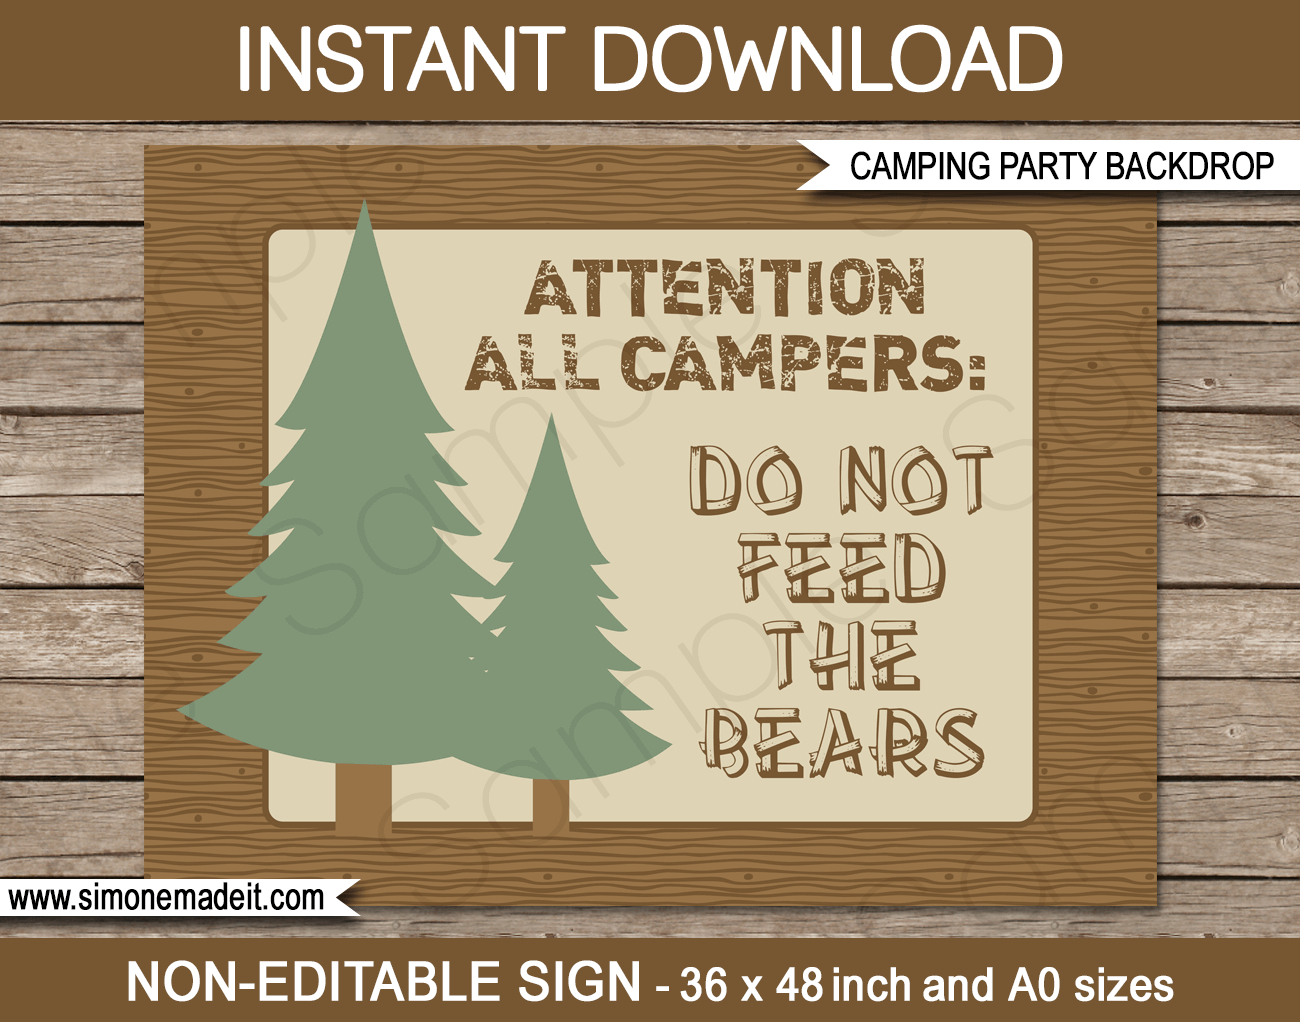 Camping Party Sign Backdrop   Camping Party Decorations - Free Printable Camping Signs